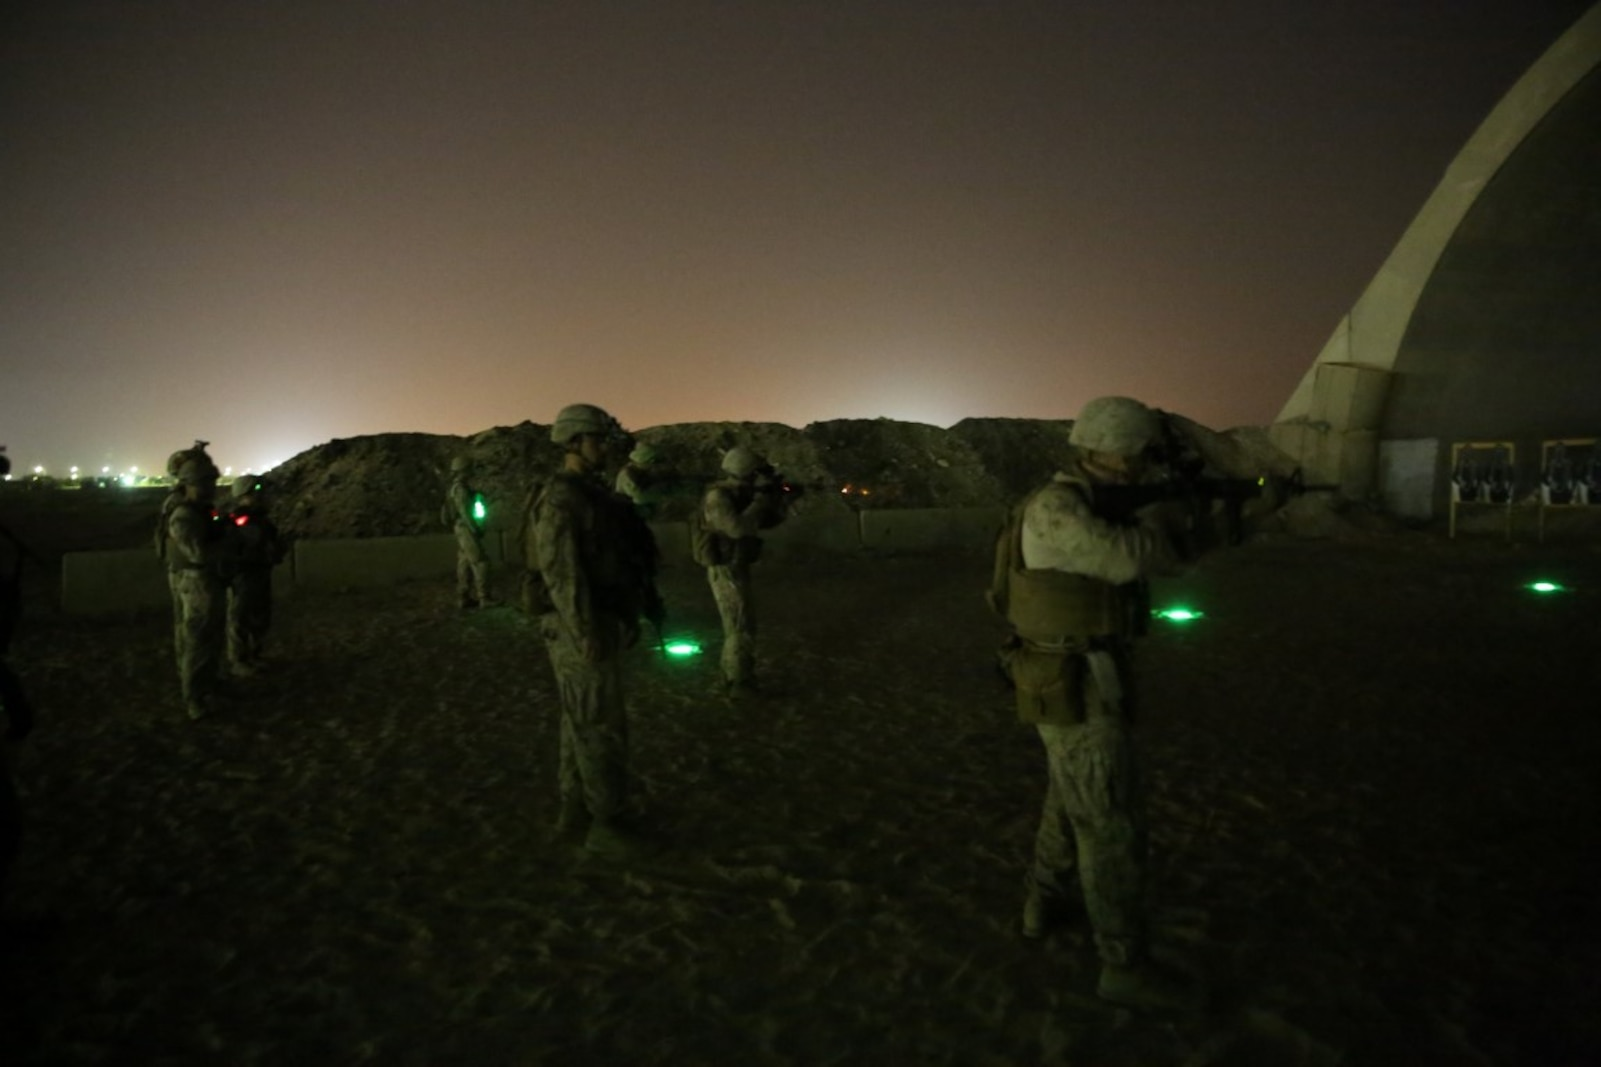 U.S. Marines with Headquarters Company, 3rd Battalion, 7th Marine Regiment, Special Purpose Marine Air-Ground Task Force-Crisis Response-Central Command, fire their rifles during a night range in Southwest Asia, Aug. 8, 2015. These Marines provide security at one of the SPMAGTF operating bases in the Middle East. The Marines and Sailors of SPMAGTF-CR-CC offer rapid, task-organized solutions to the commander of USCENTCOM across an area of operations spanning 20 countries.